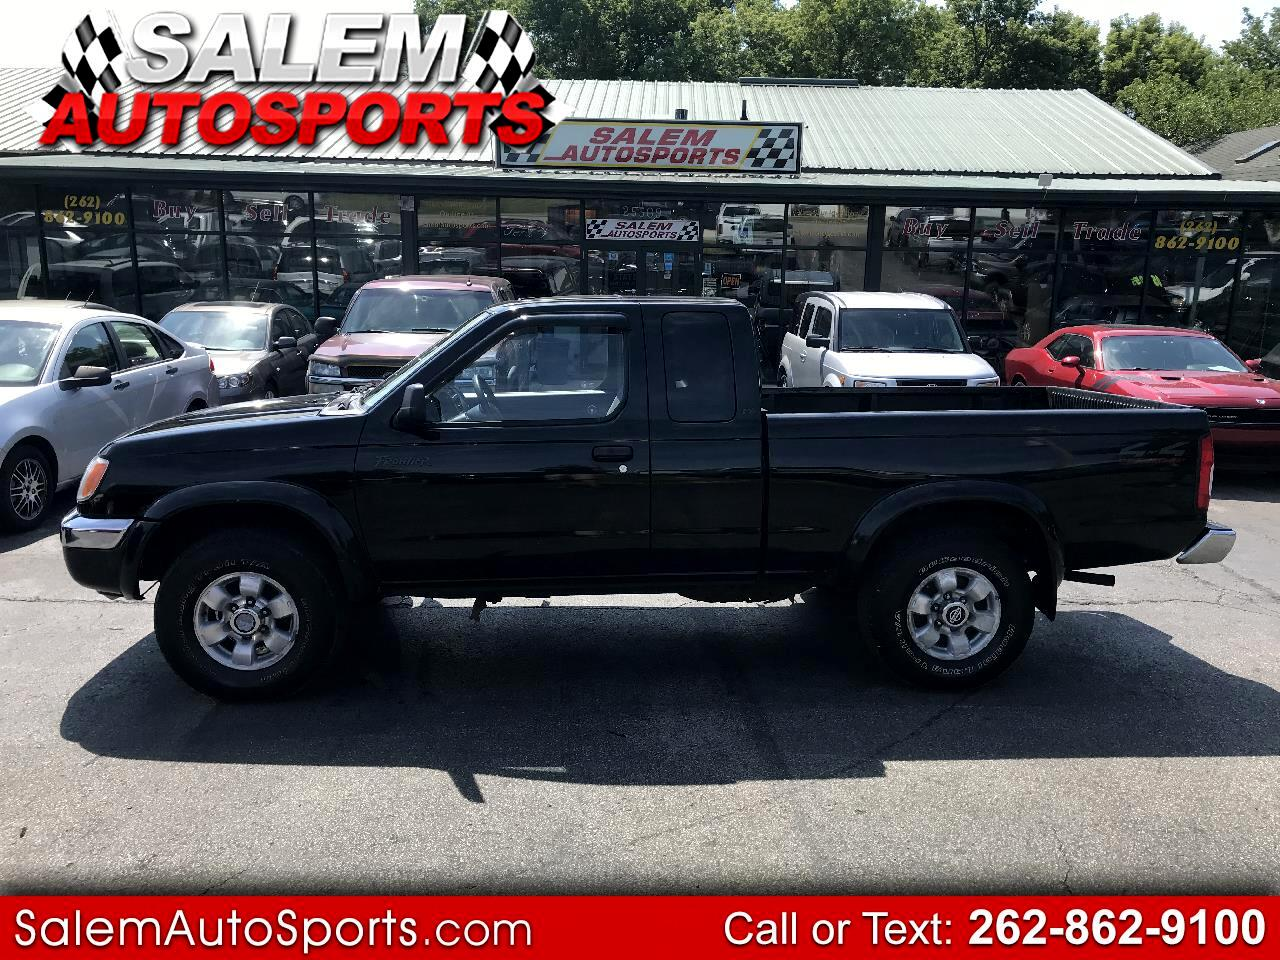 1999 Nissan Frontier 4WD XE King Cab V6 Auto